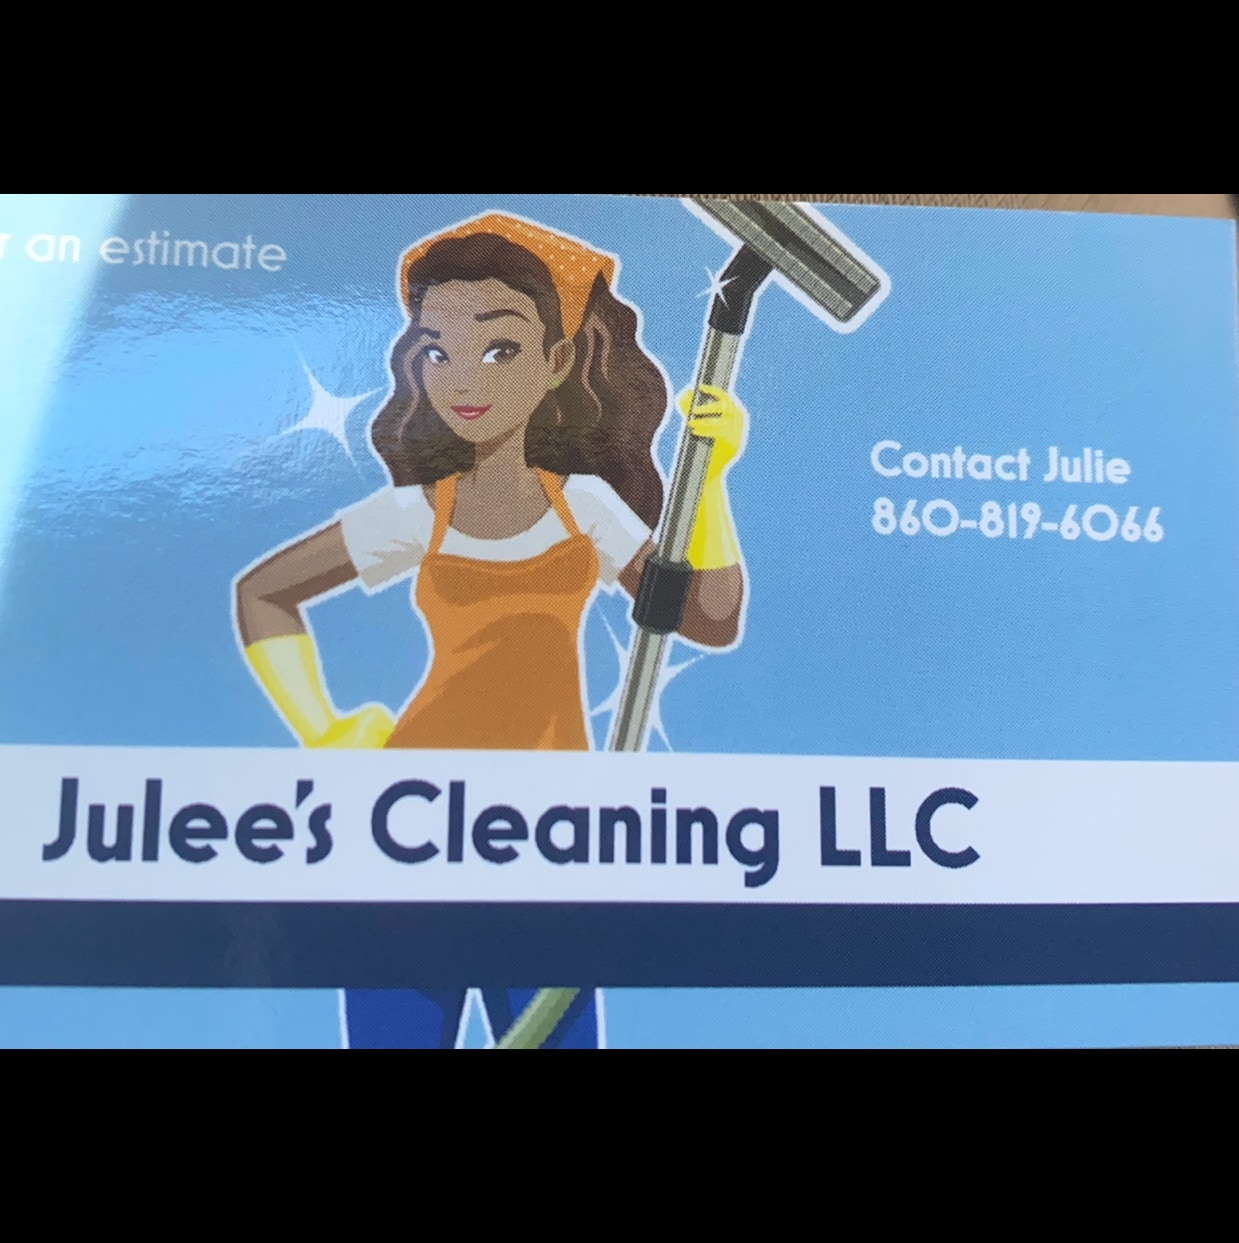 Julee's Cleaning and Lawn Care  logo